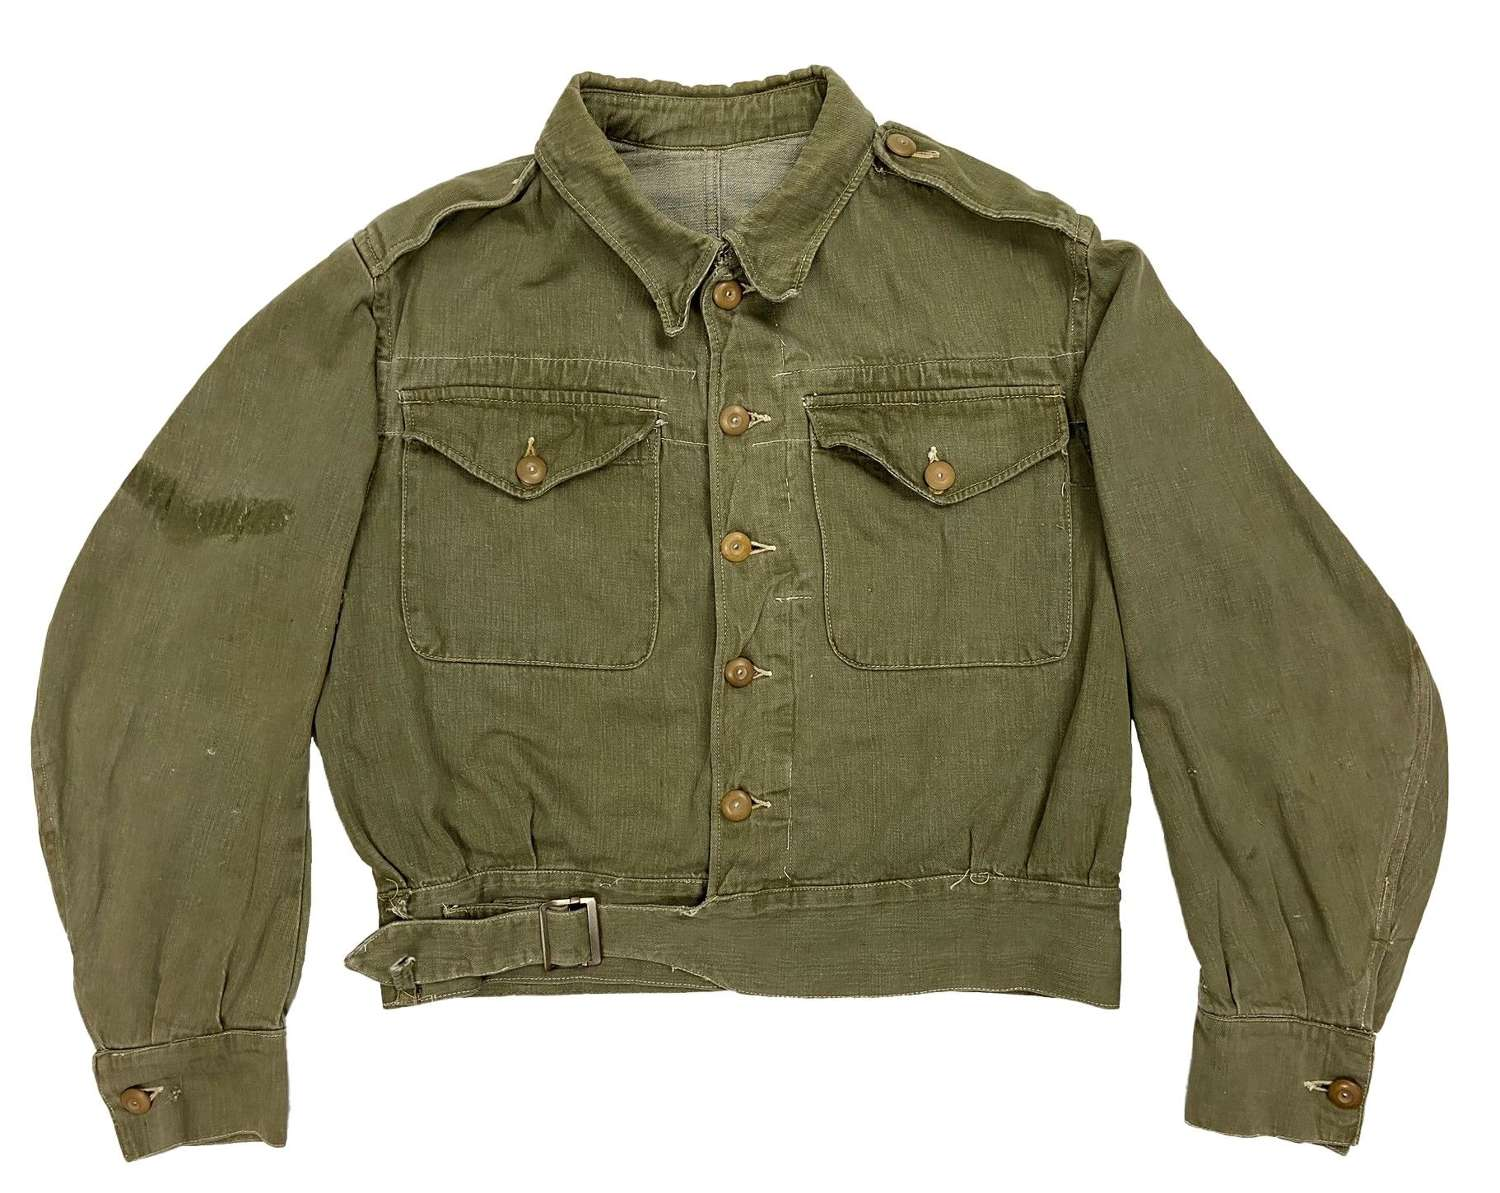 Original WW2 British Army Denim Battledress Blouse